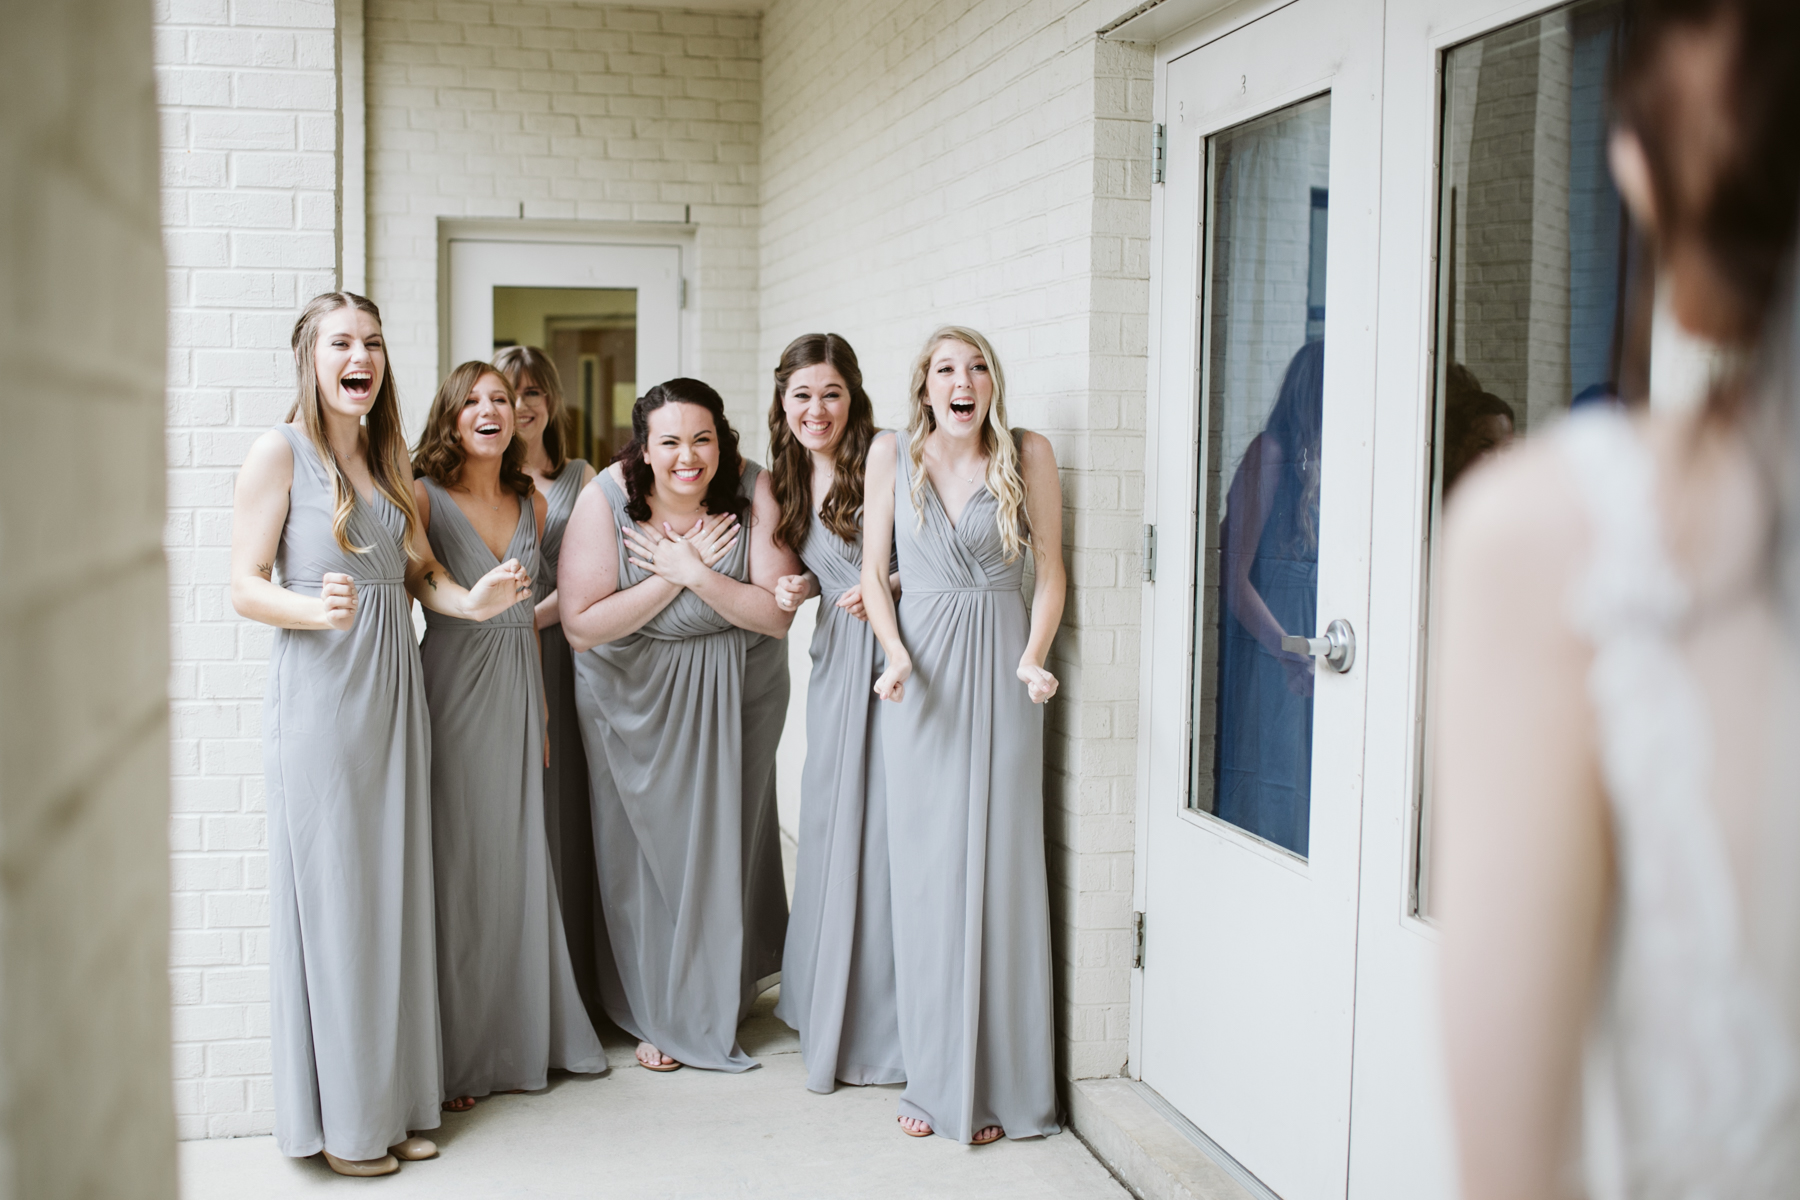 the sweetest bridesmaids reveal before a rainy summer wedding at brentwood hills church in Nashville, tennessee